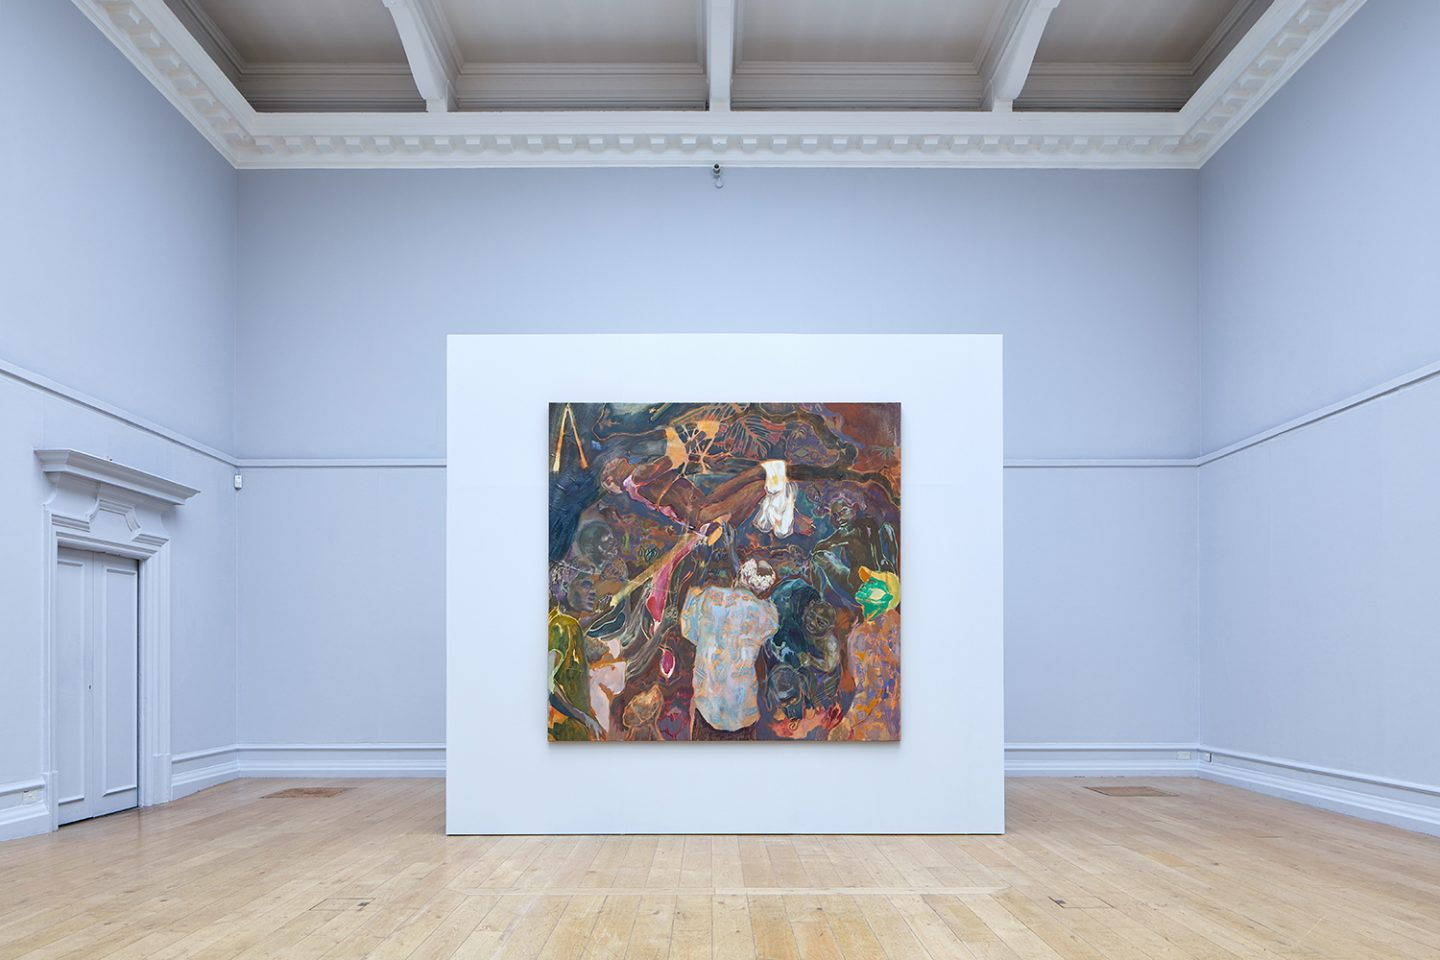 Michael Armitage: The Chapel